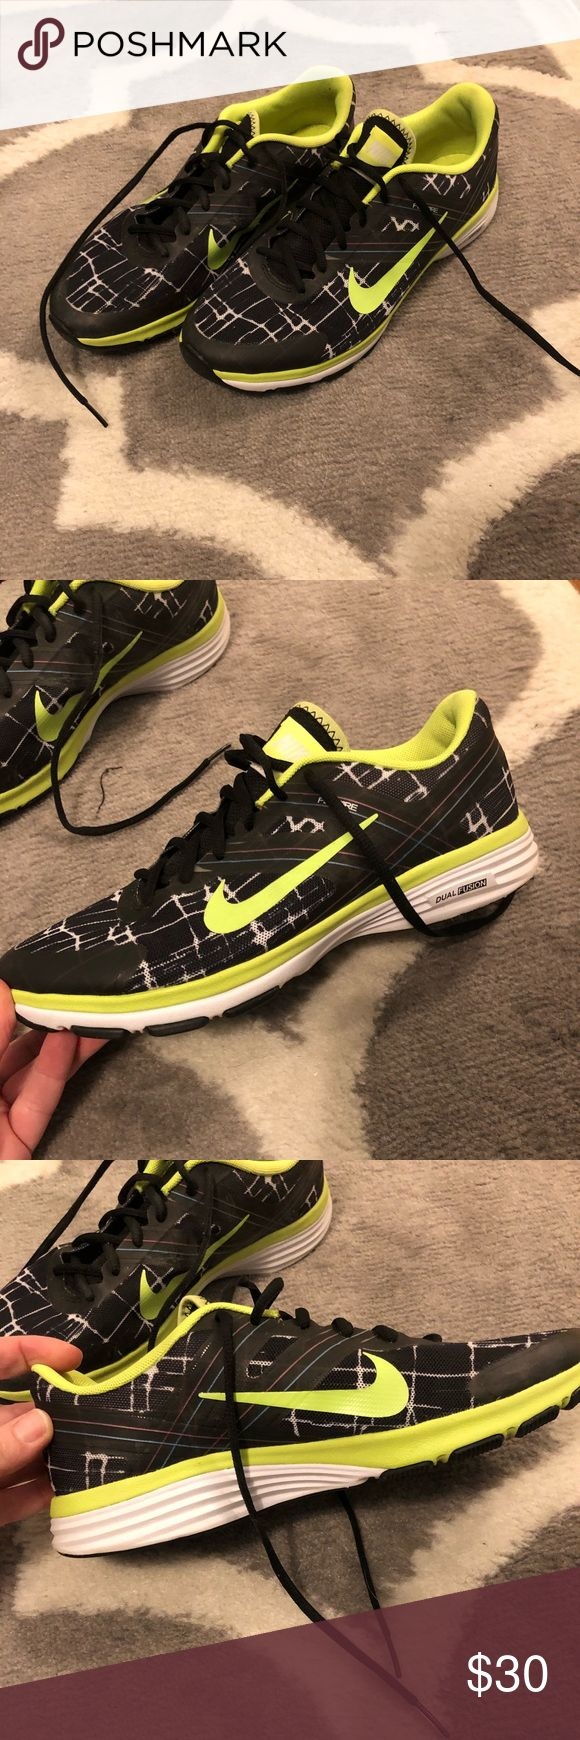 NWOT Nike Dual Fusion Sneakers Size 8.5 Brand new! Bought them and never wore them. Size 8.5. Nike Shoes Sneakers